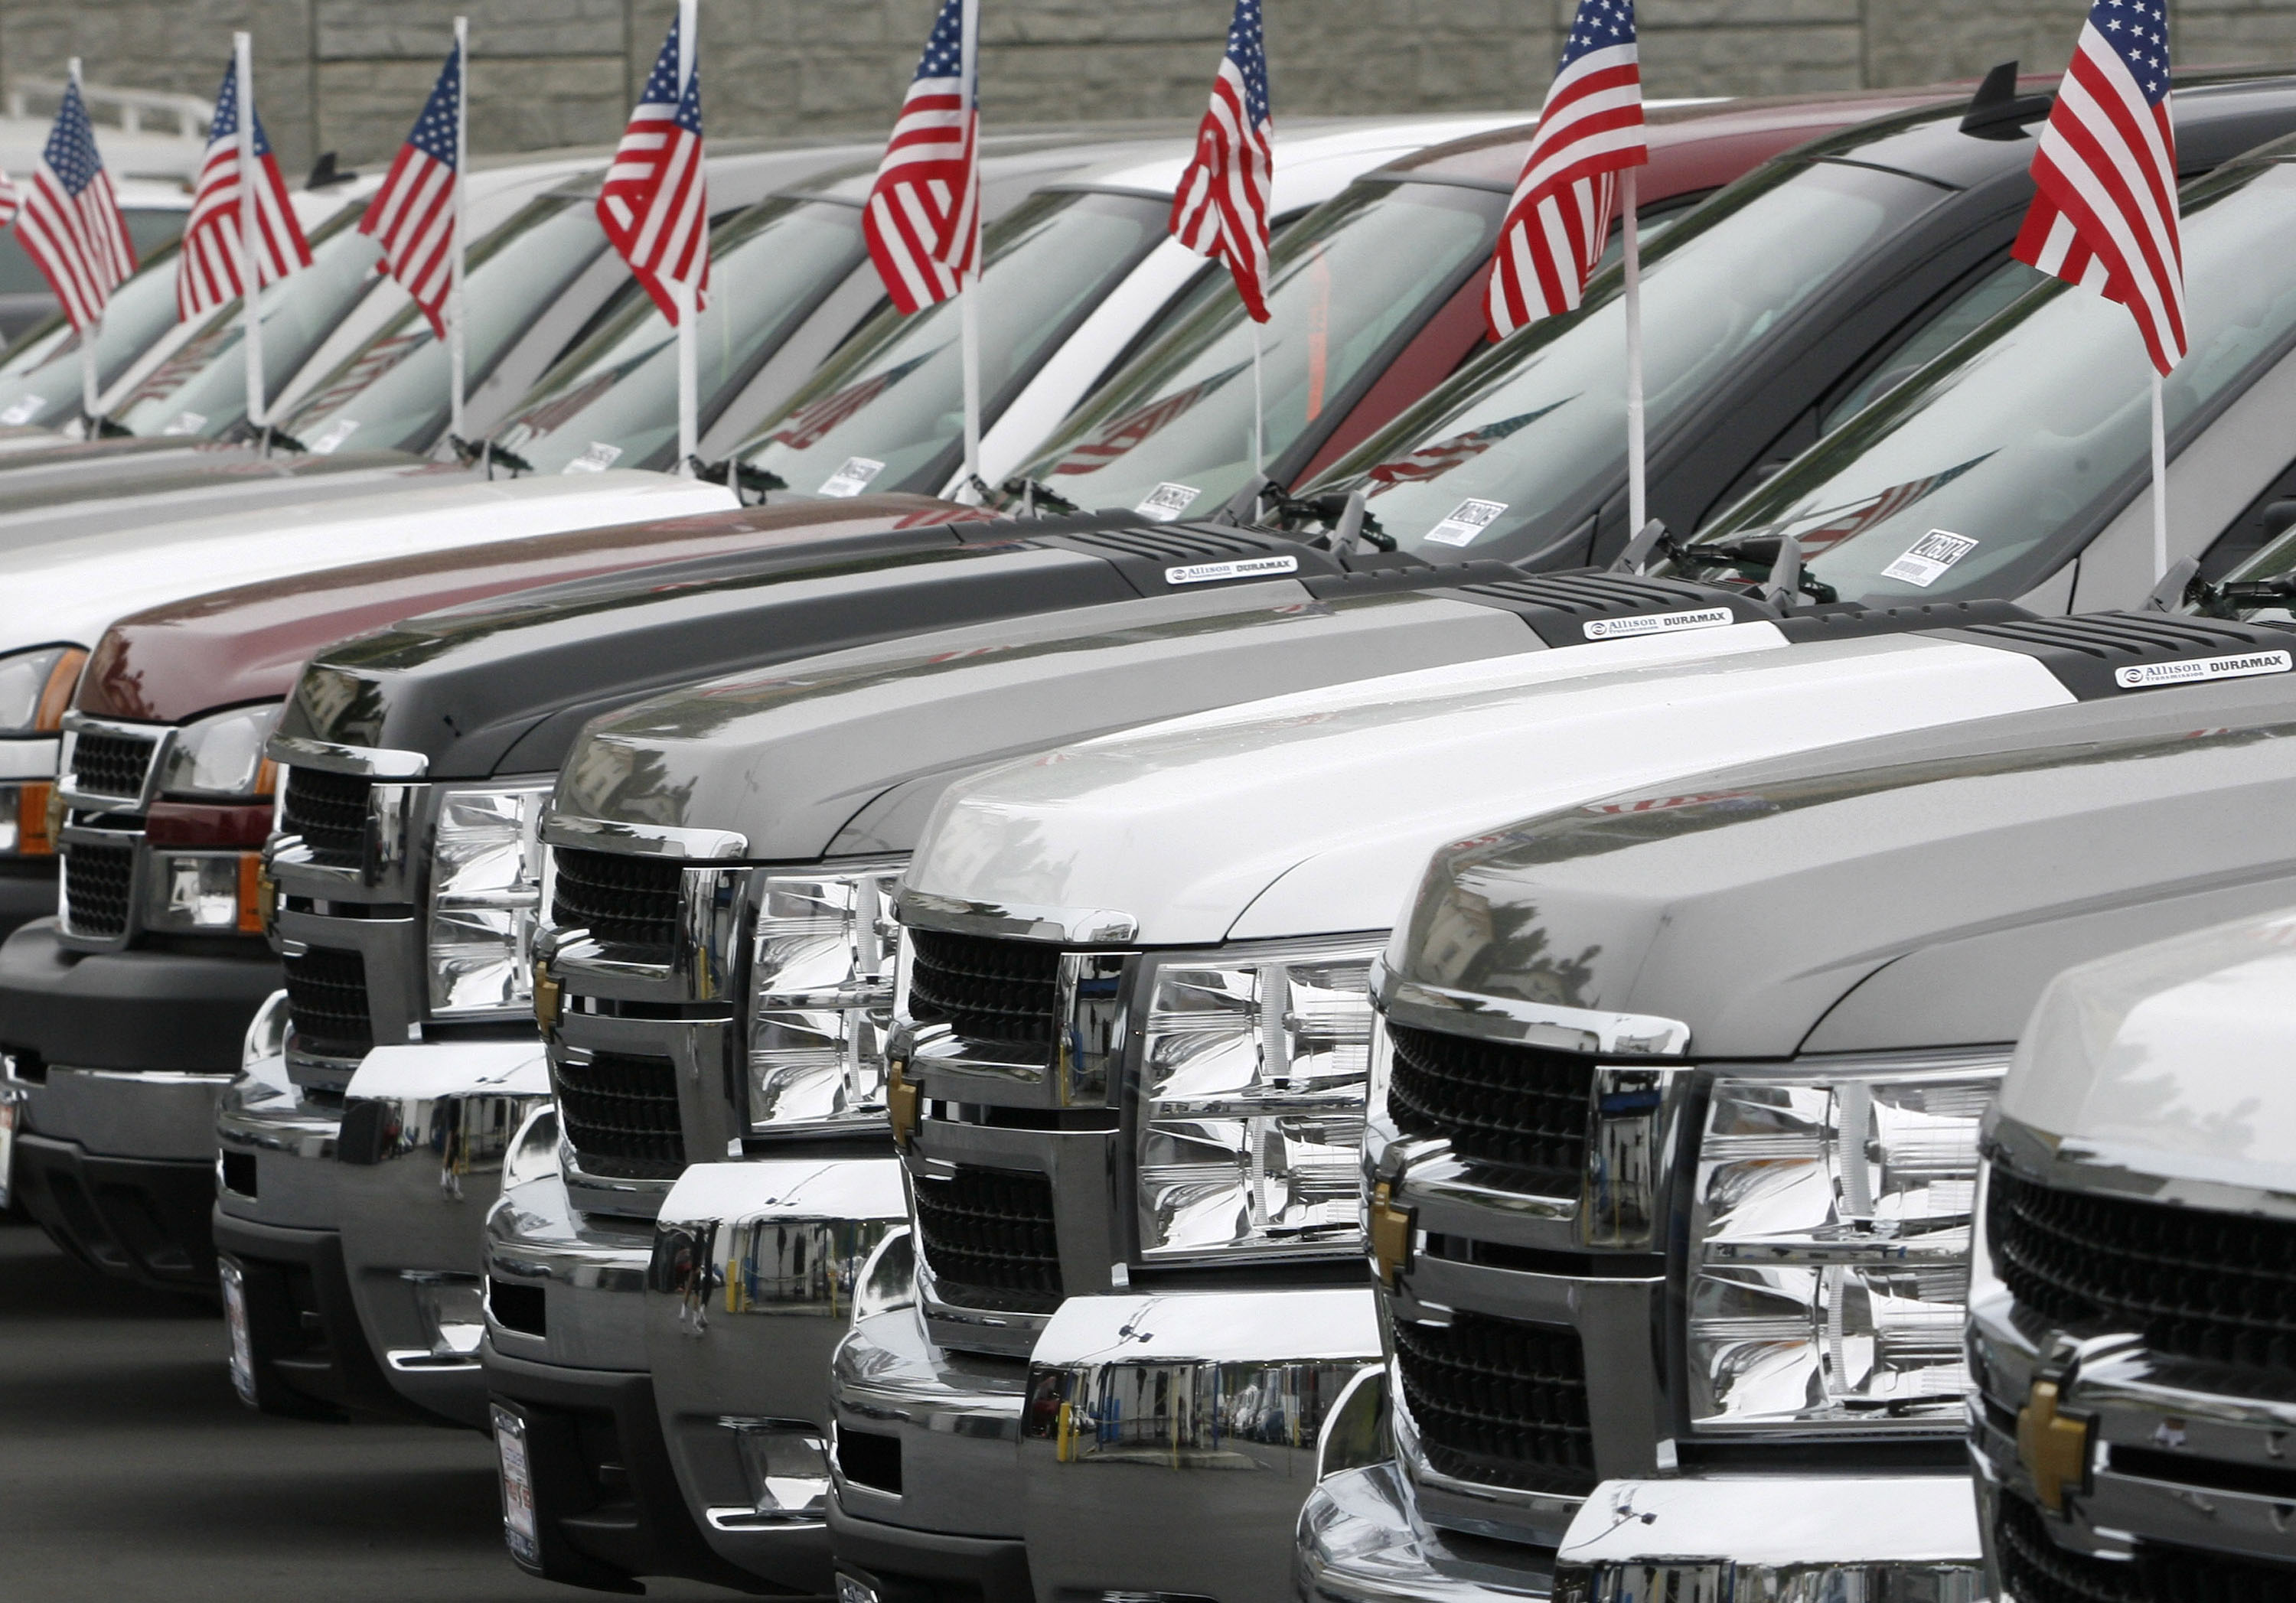 Pickup trucks with American flags affixed to their attennas